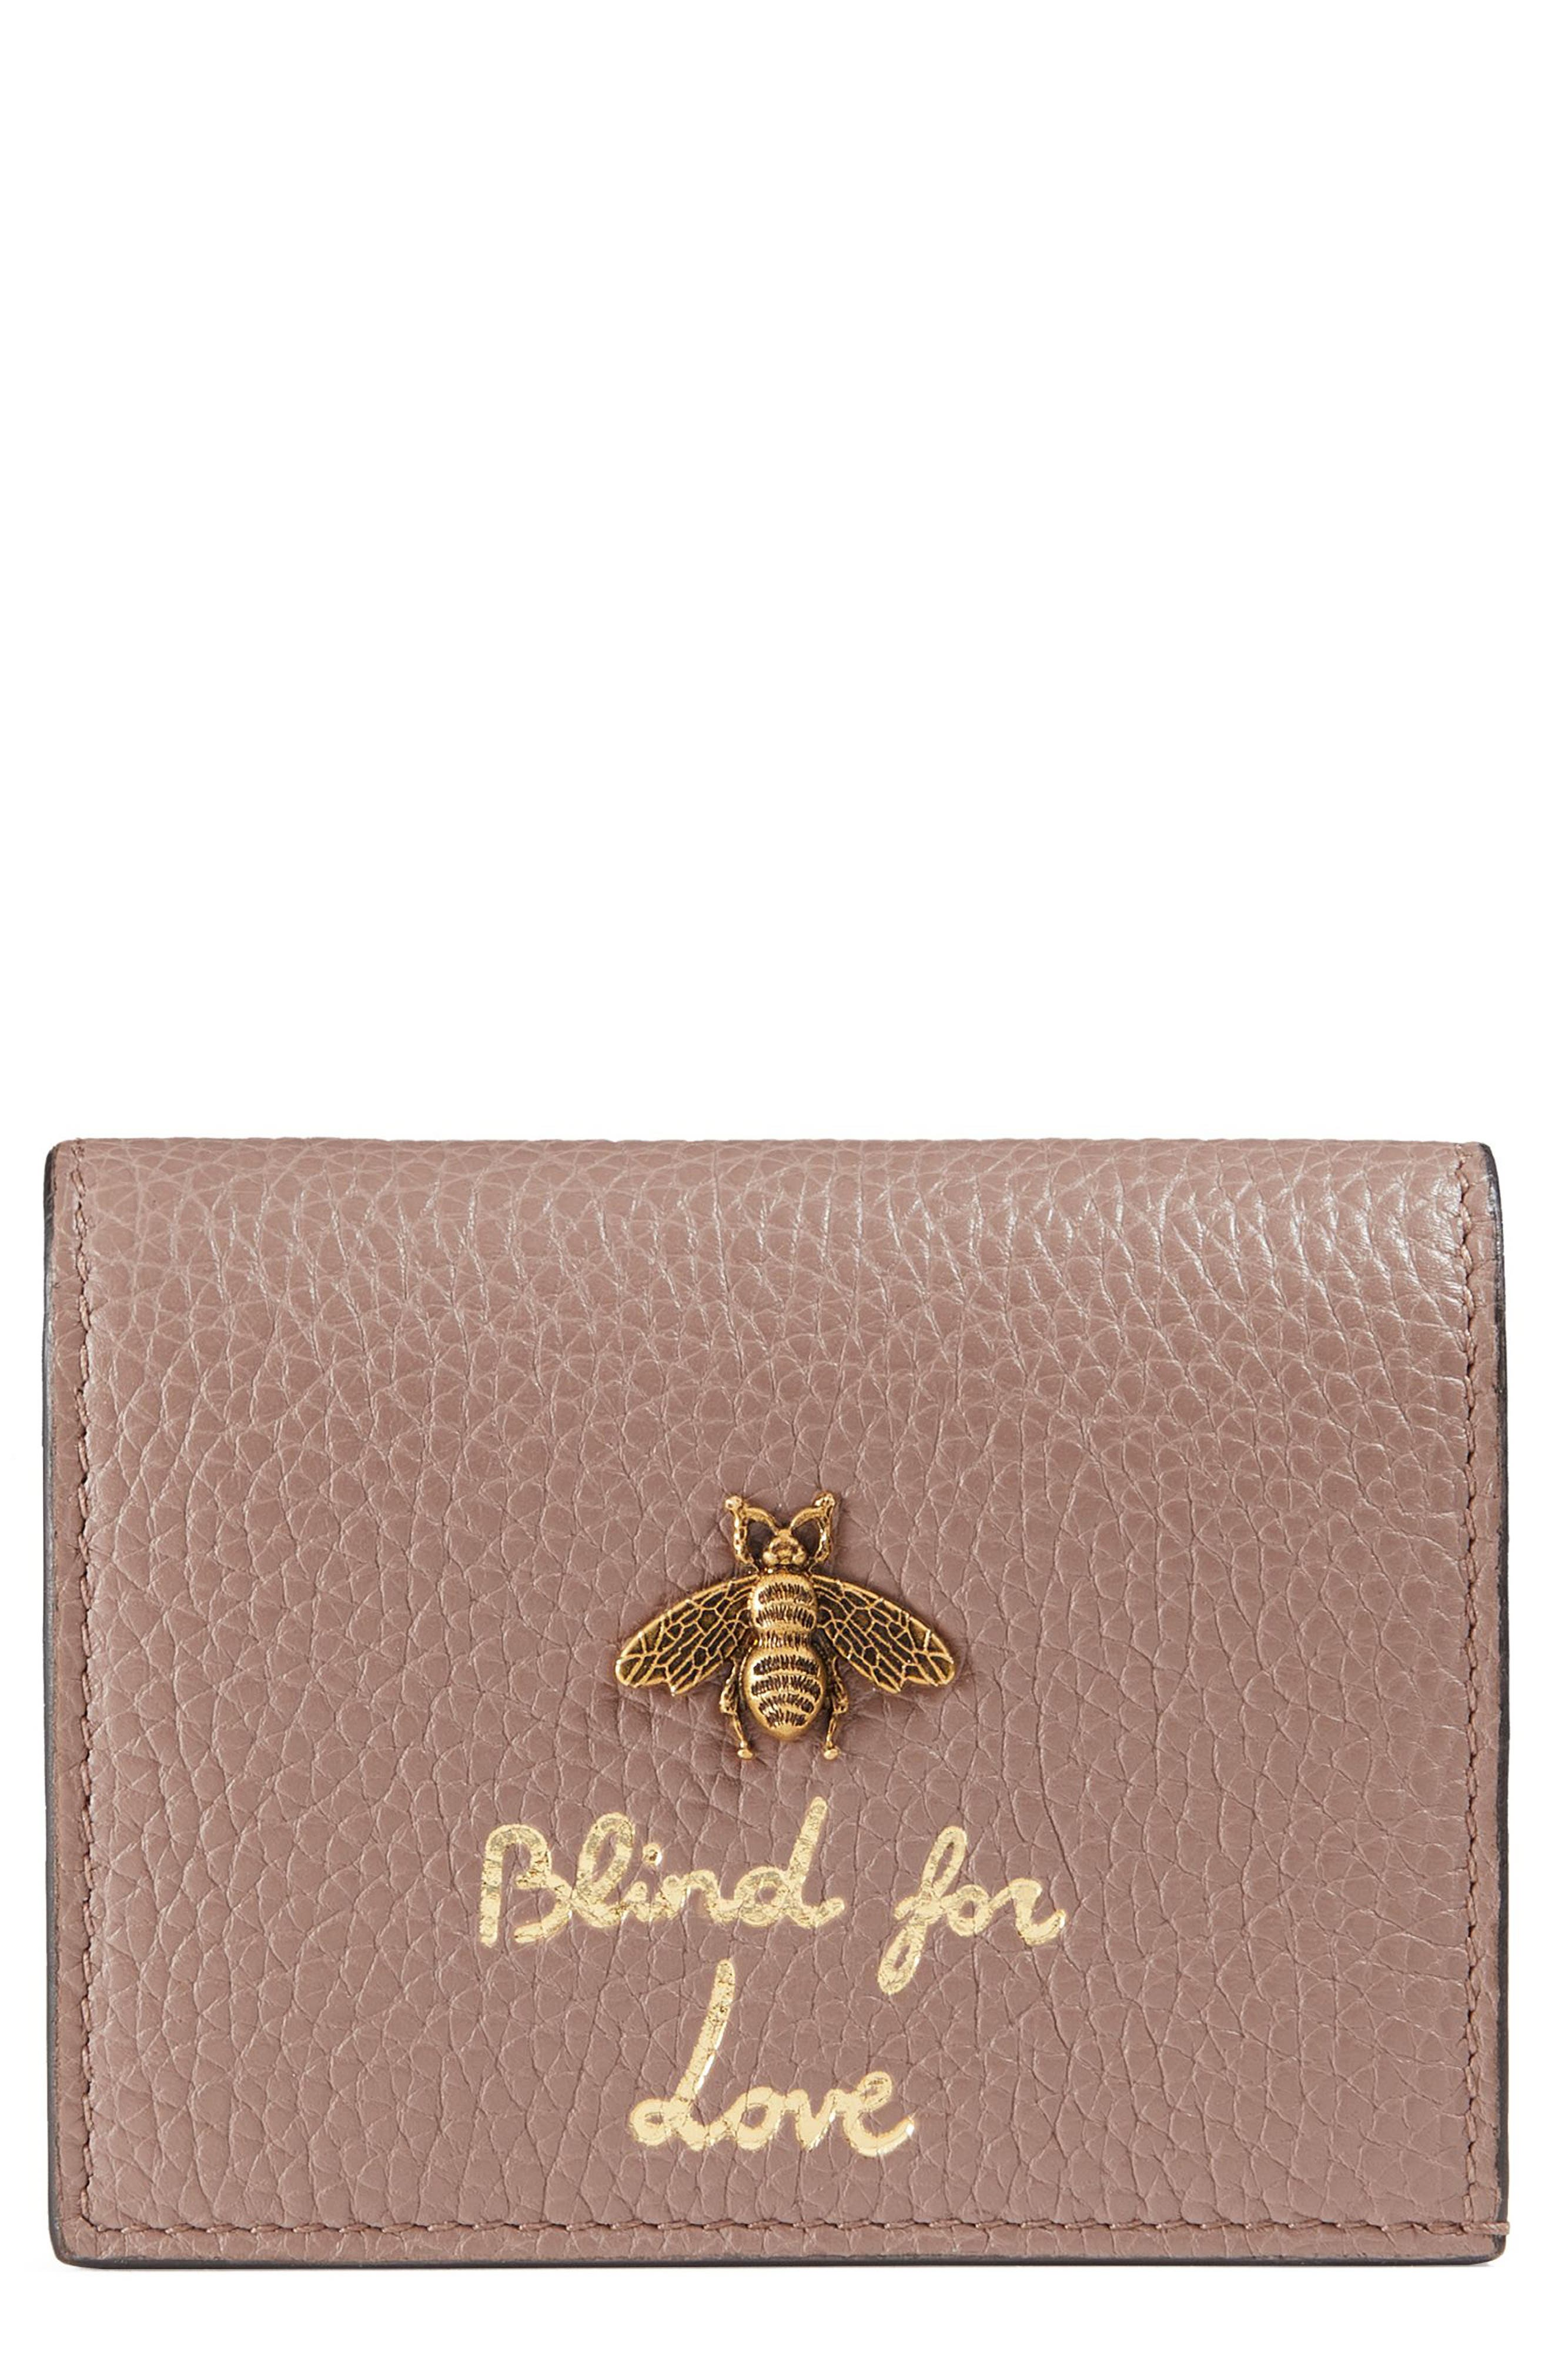 Animalier Bee Leather Card Case,                             Main thumbnail 1, color,                             Porcelain Rose